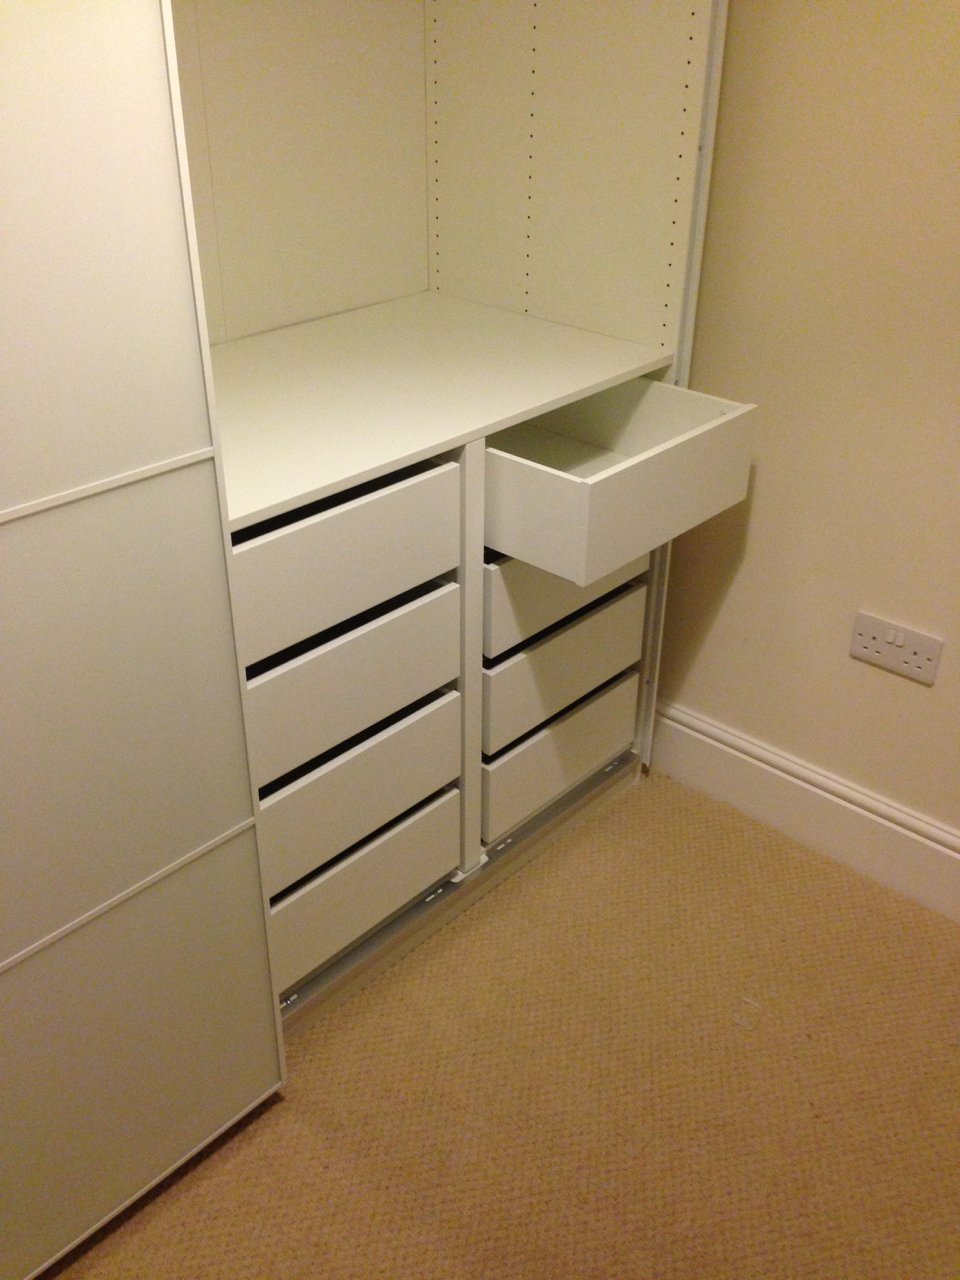 Ikea PAX wardrobes features soft close drawers assembled by www.norwichflatpack.co.uk